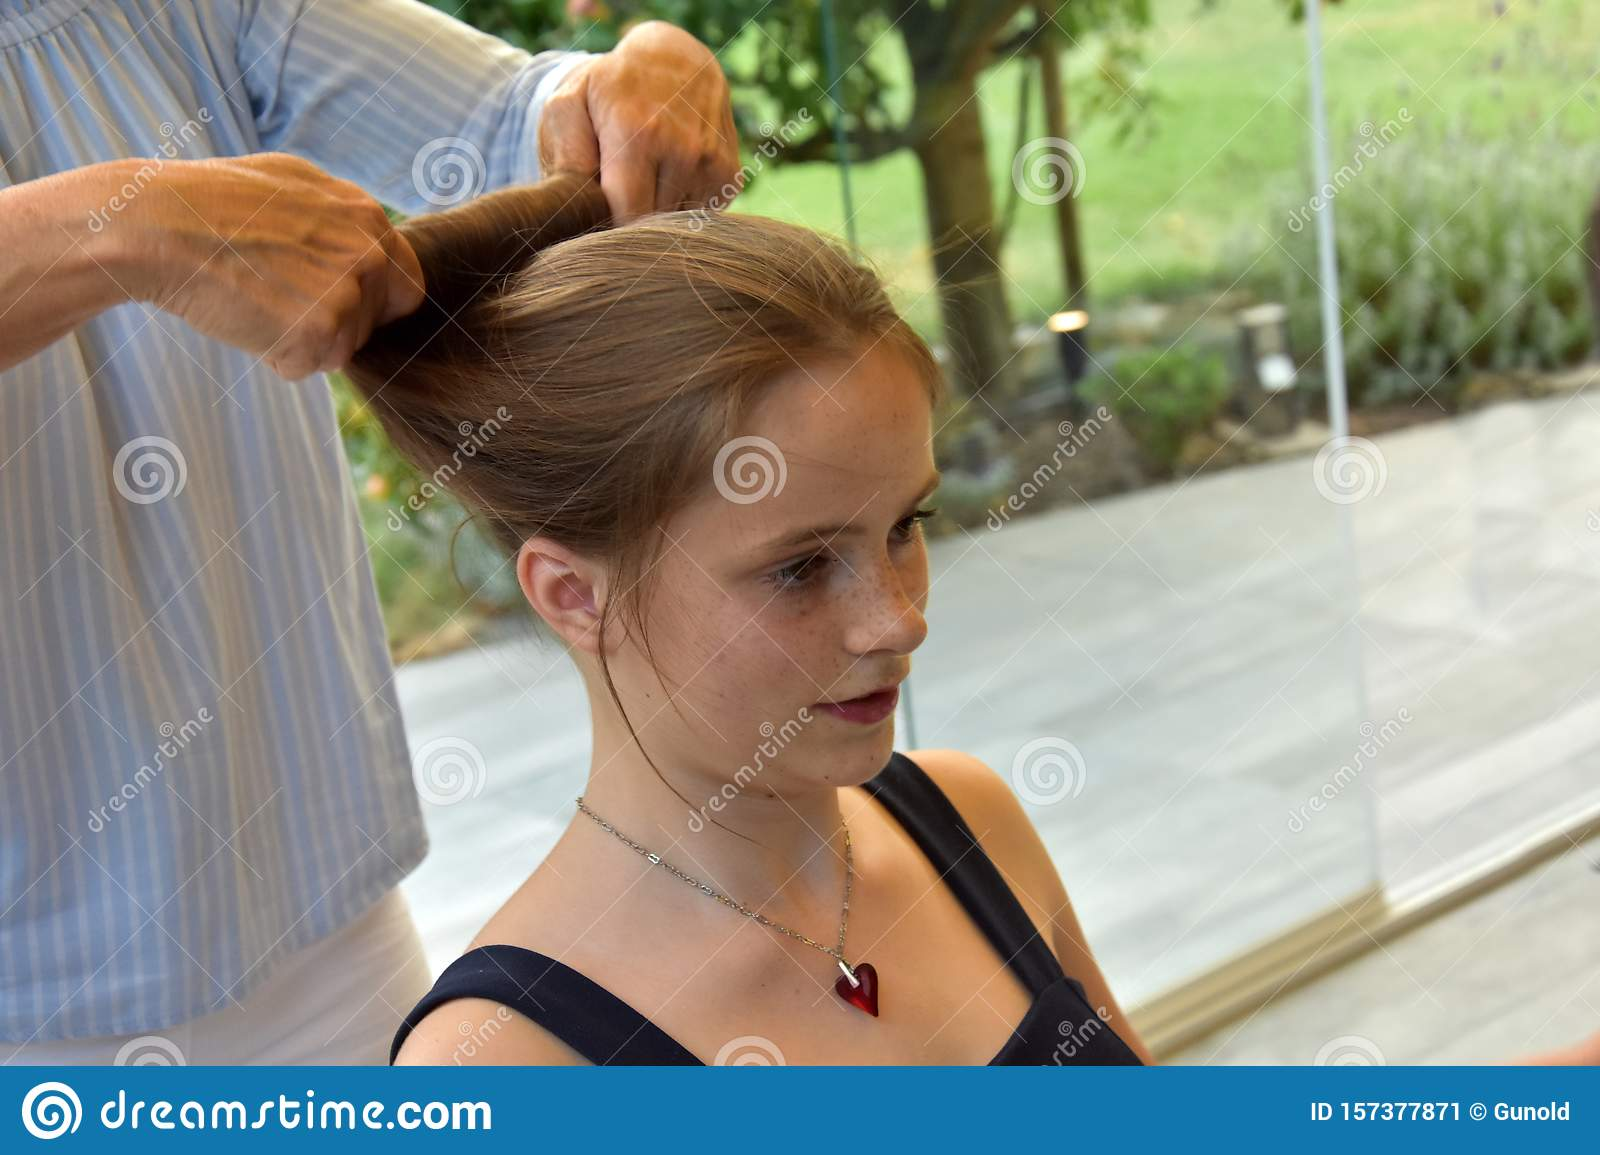 Teenage girl gets a new hairstyle